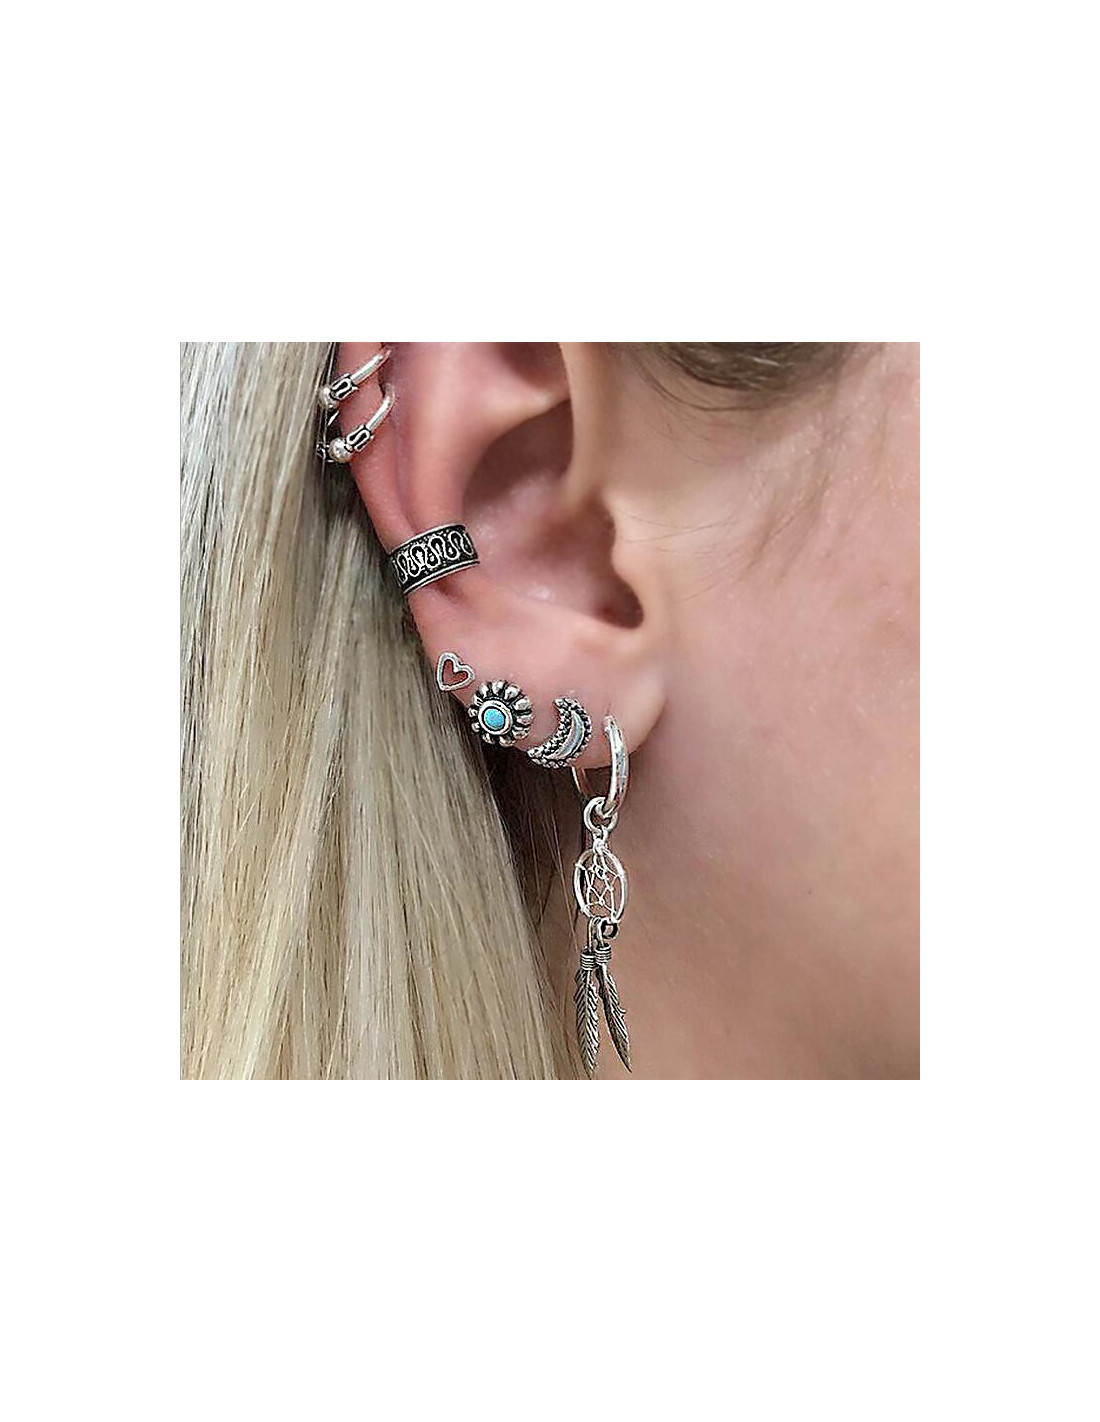 Dream Catcher Ear Cuff cercei si ear cuff boho dreamcatcher inimioara luna si floare 40